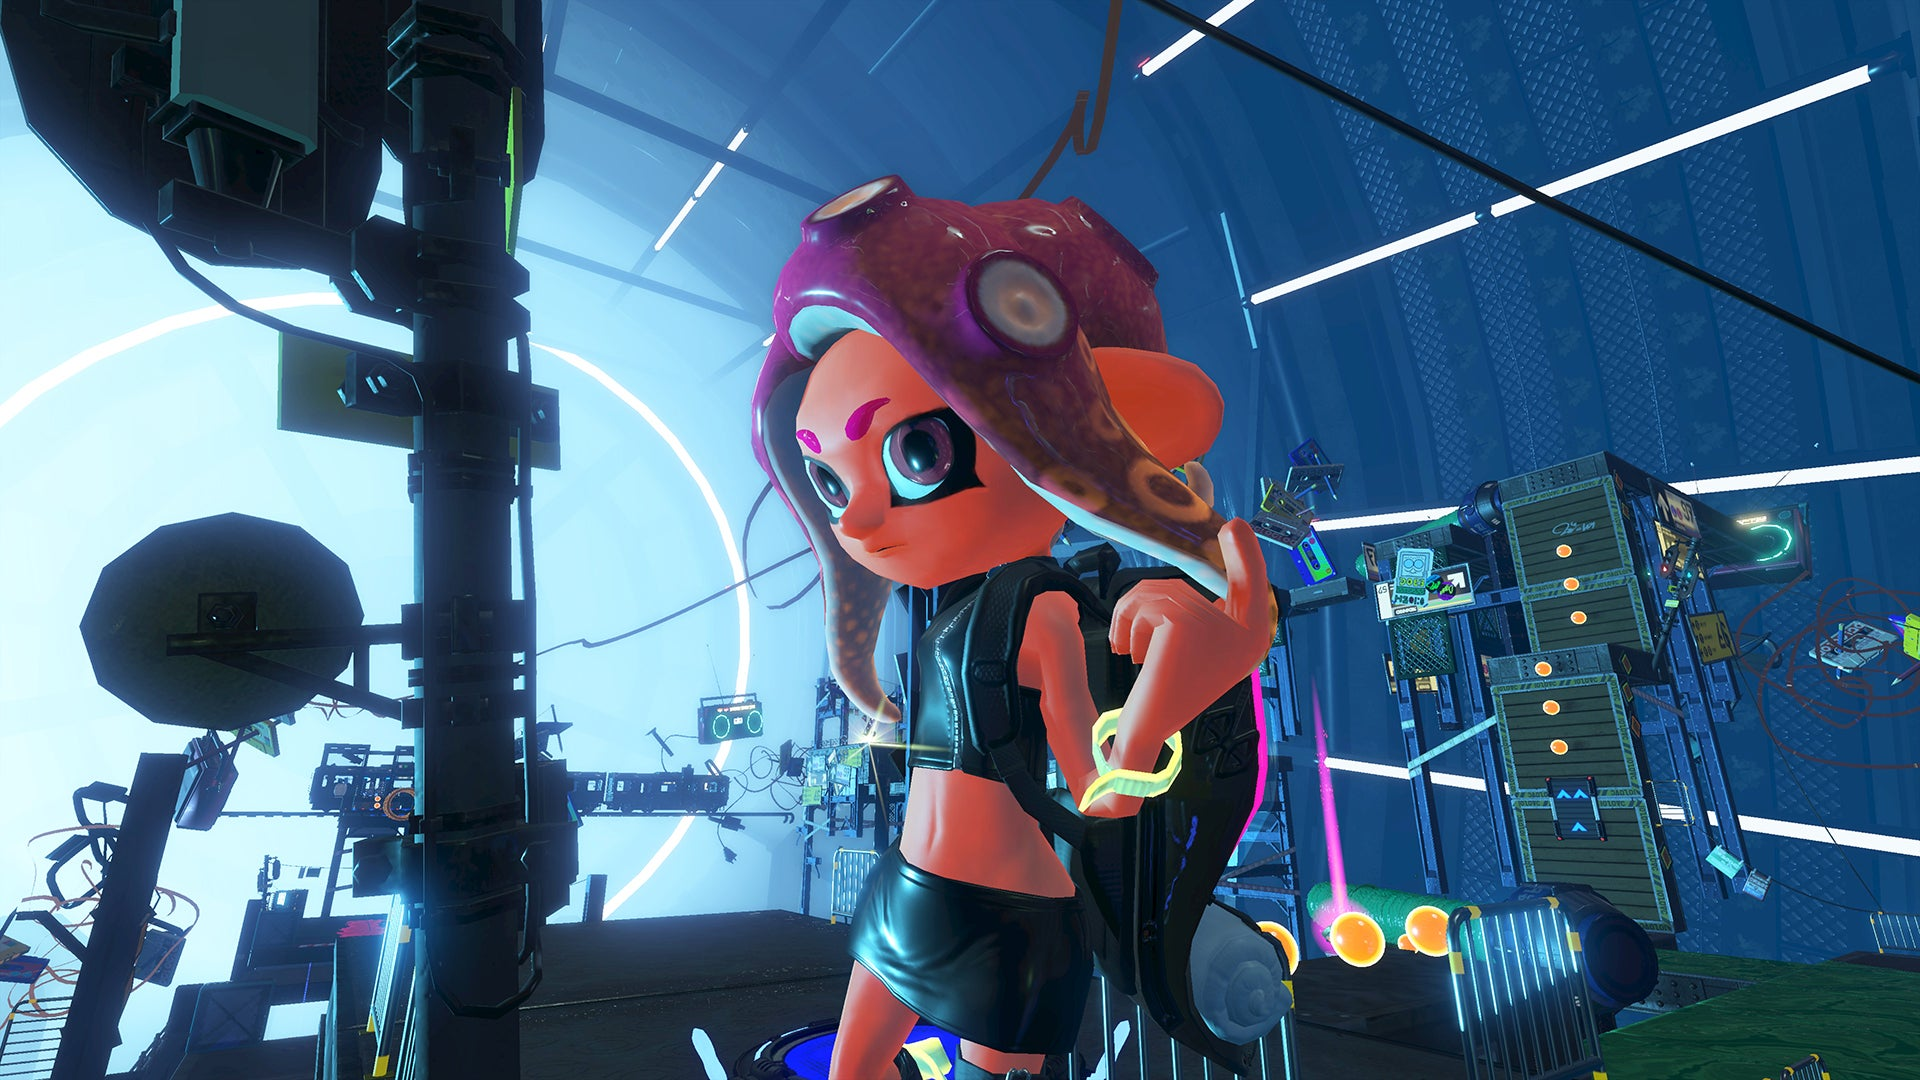 Splatoon 2's 'Octo Expansion' Is Full Of Short, Challenging Single-Player Levels